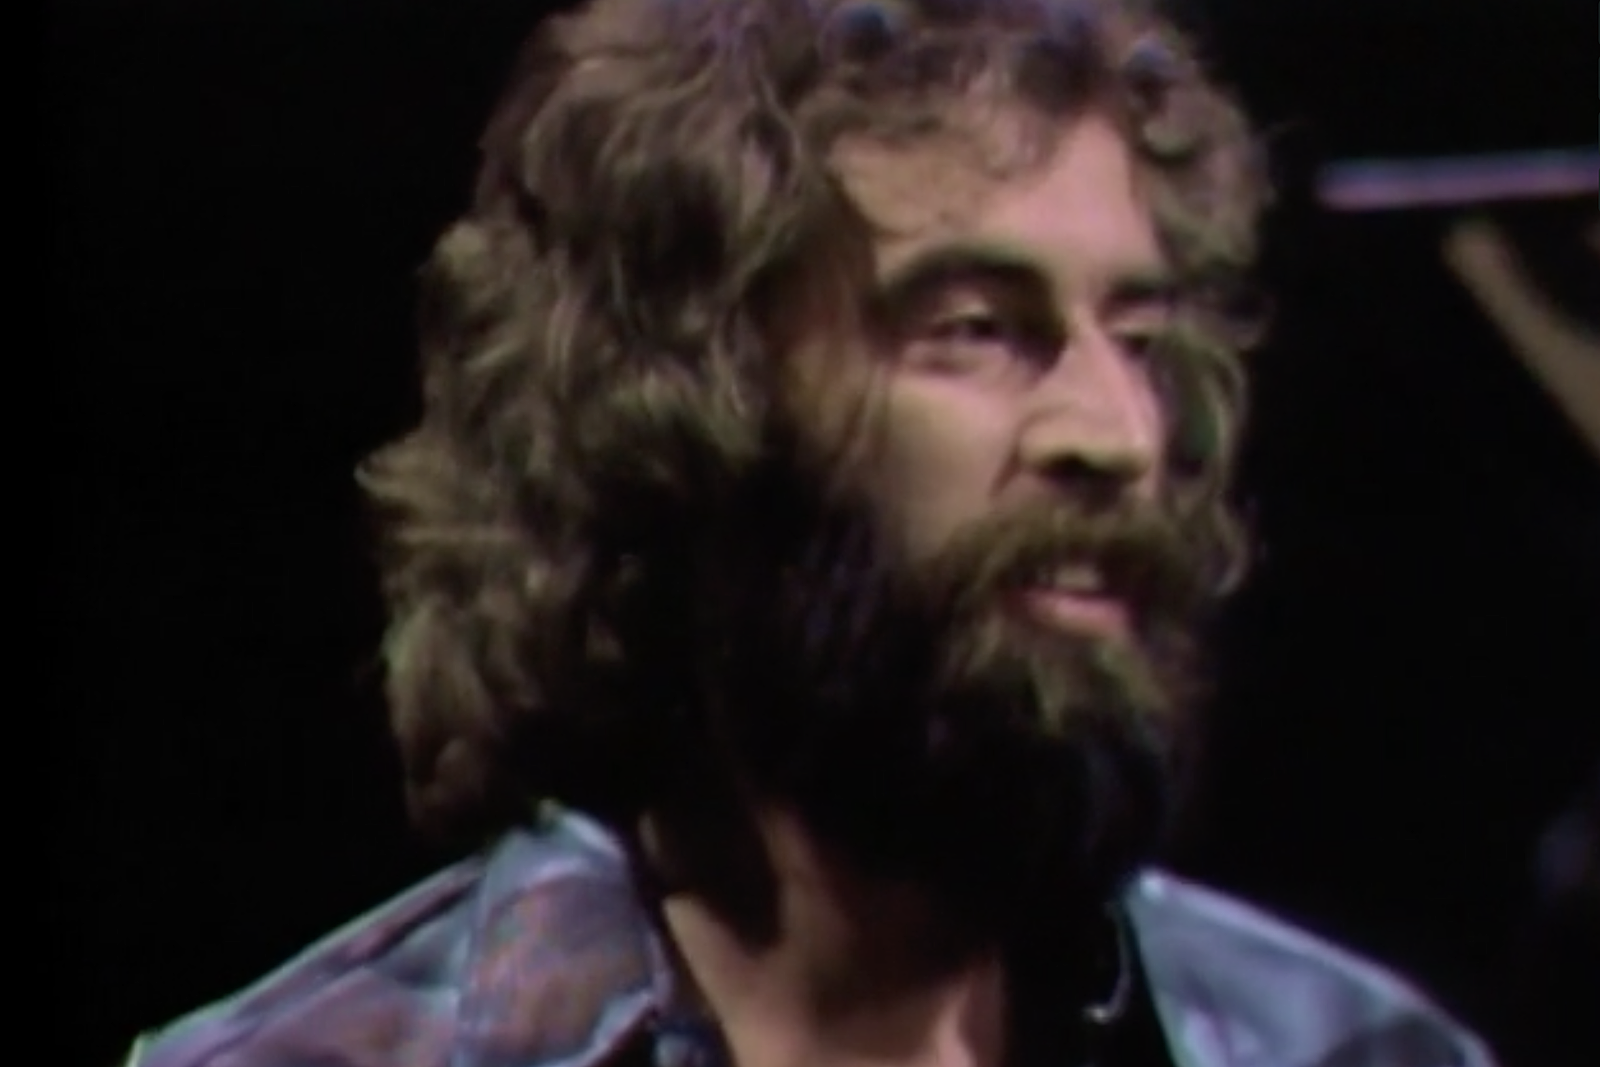 The Day The Bands Richard Manuel Was Found Dead